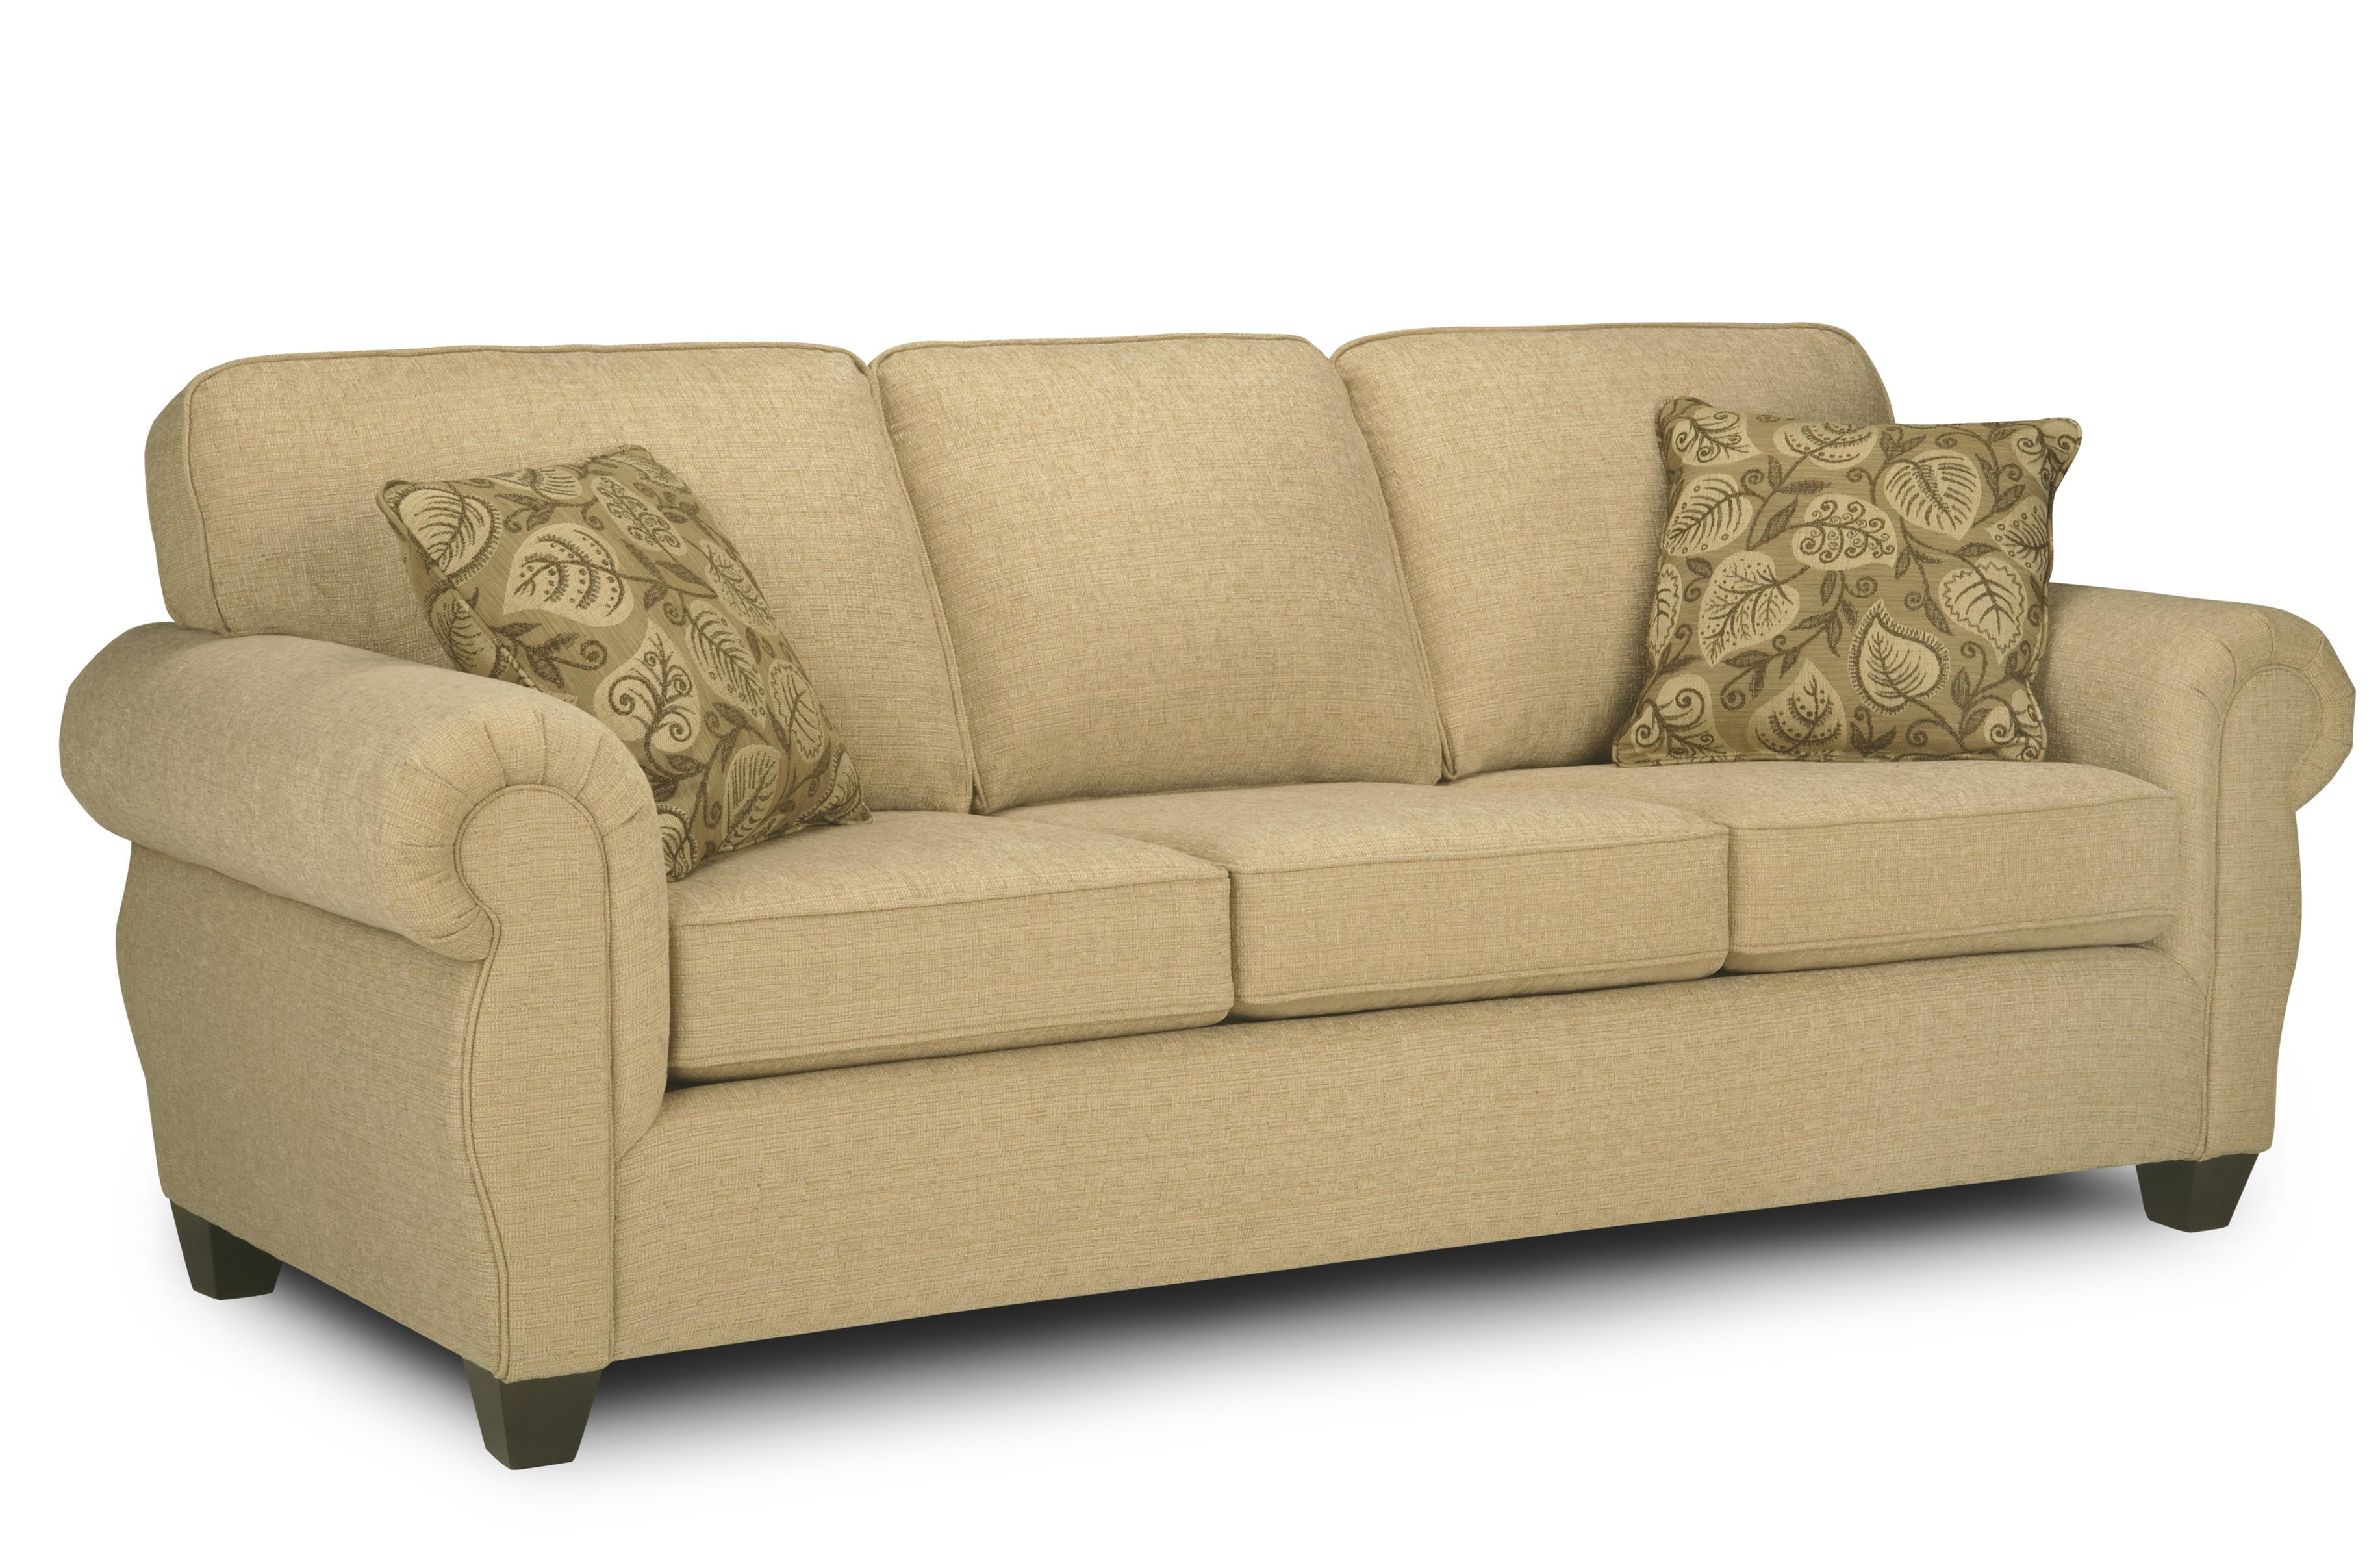 Sofa Warehouse Toronto Superstyle 9555 Sofa Transitional Sofa Stoney Creek